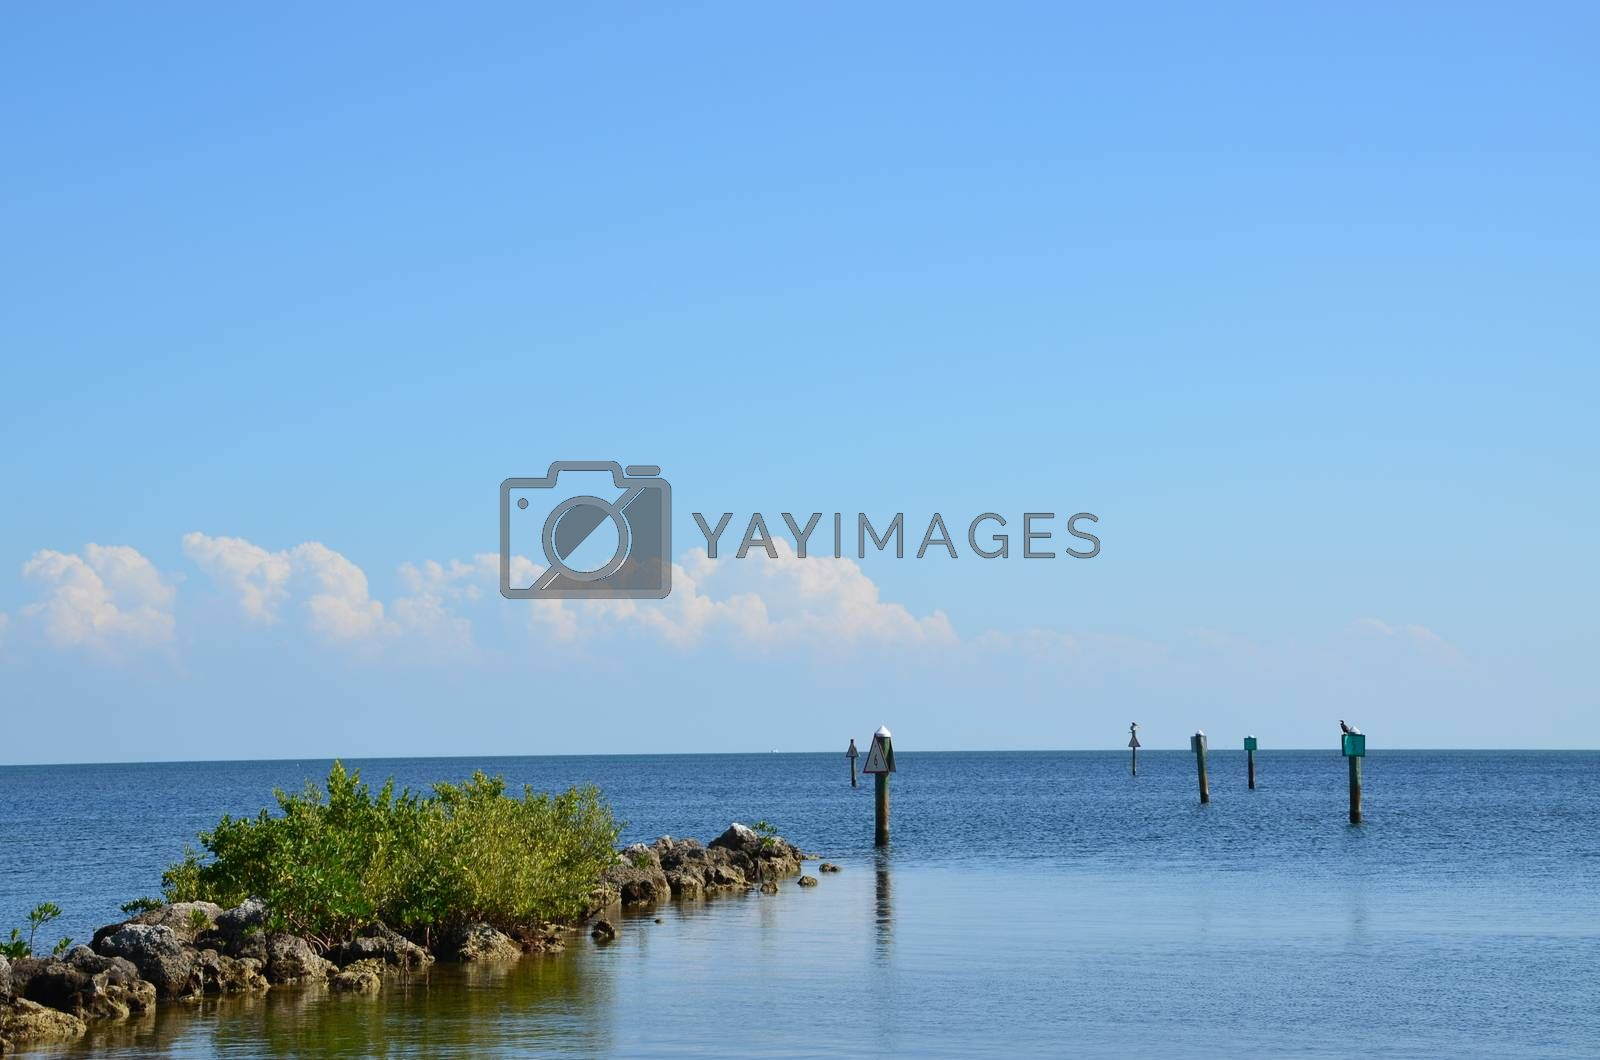 A clear channel to the dock for boats on a sunny day